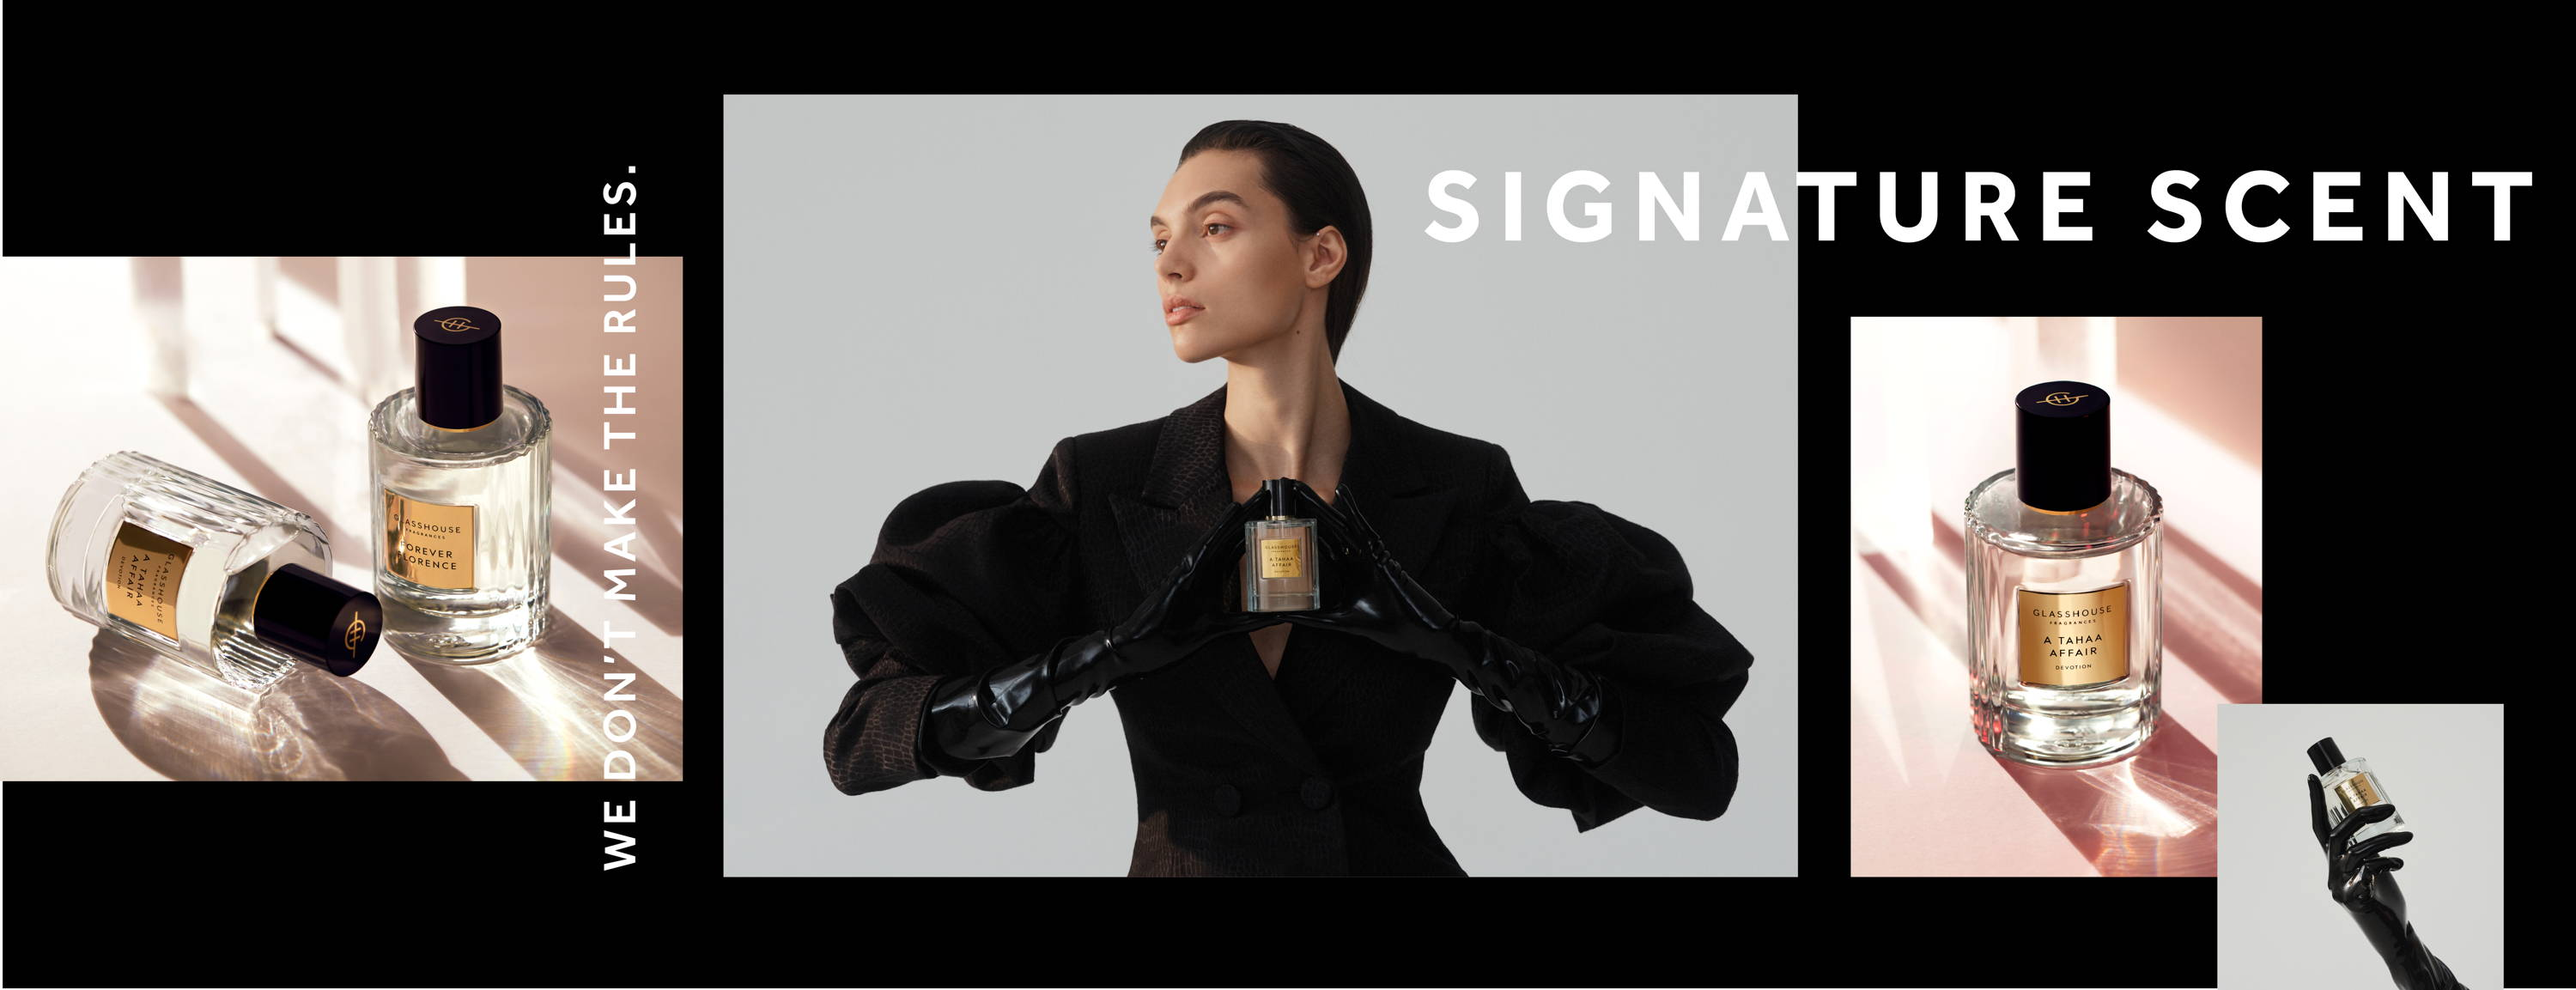 What your signature scent says about you image banner